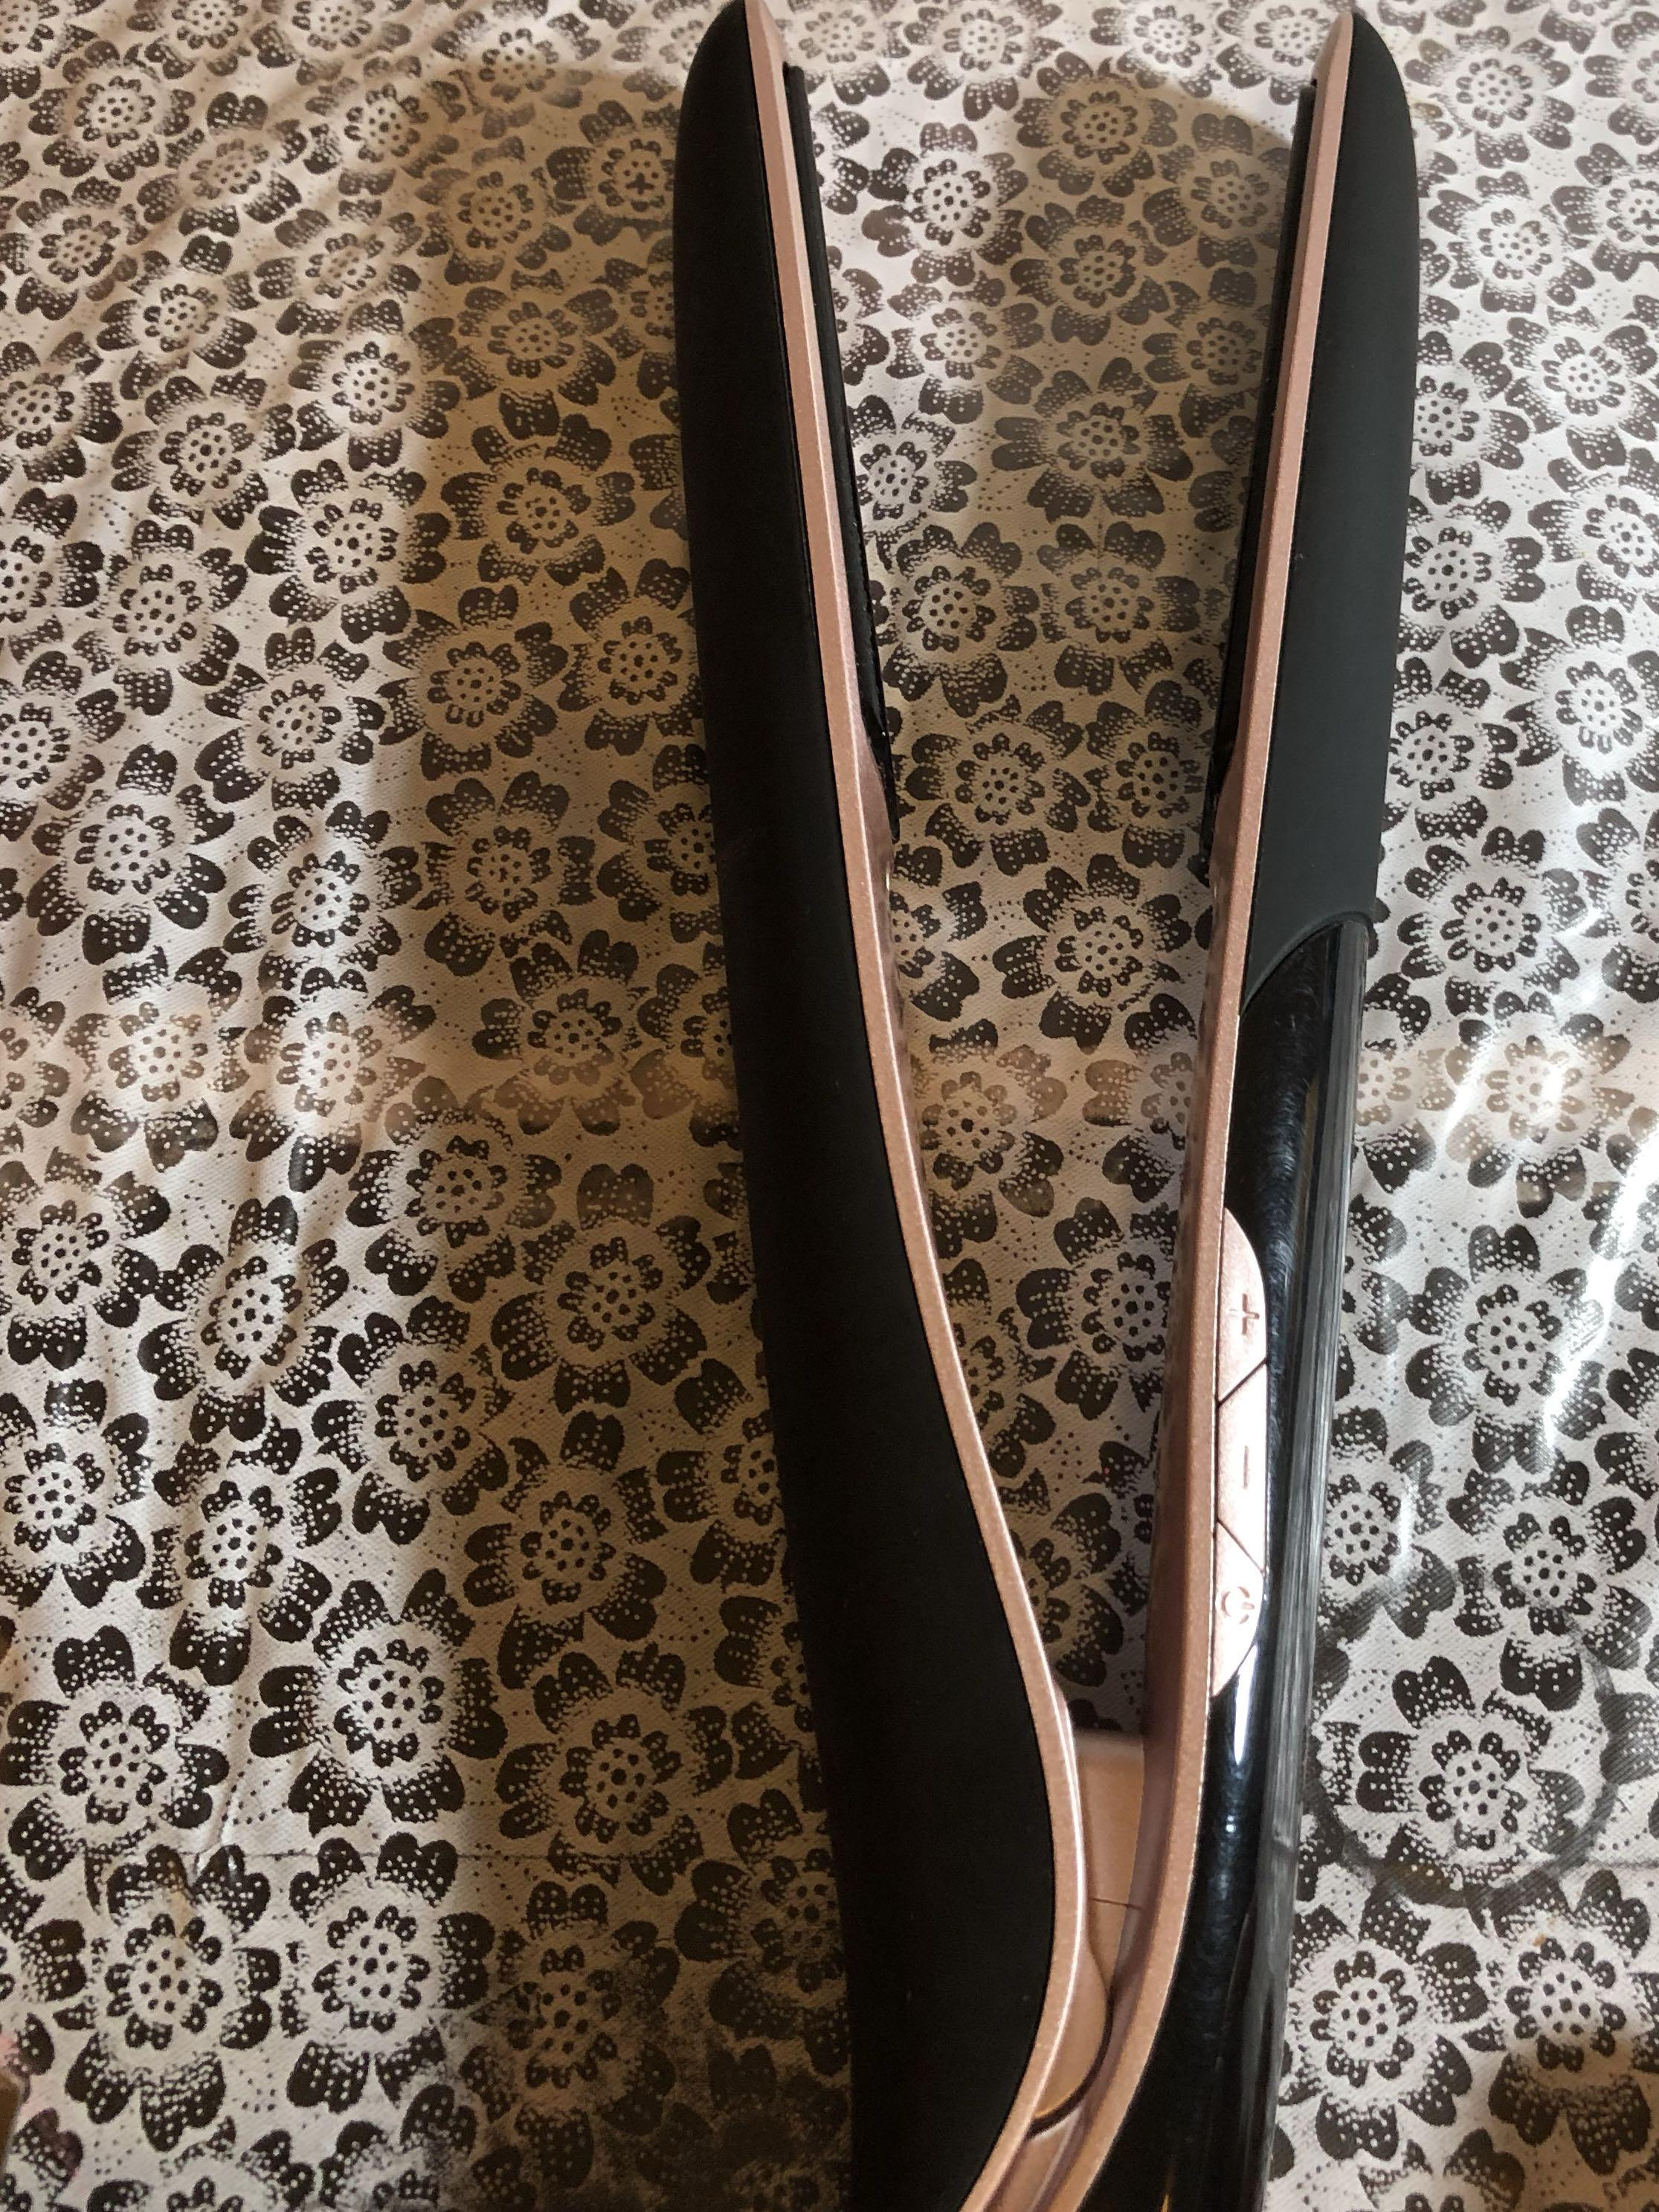 Cabello hairstraightener and curler 2 in 1